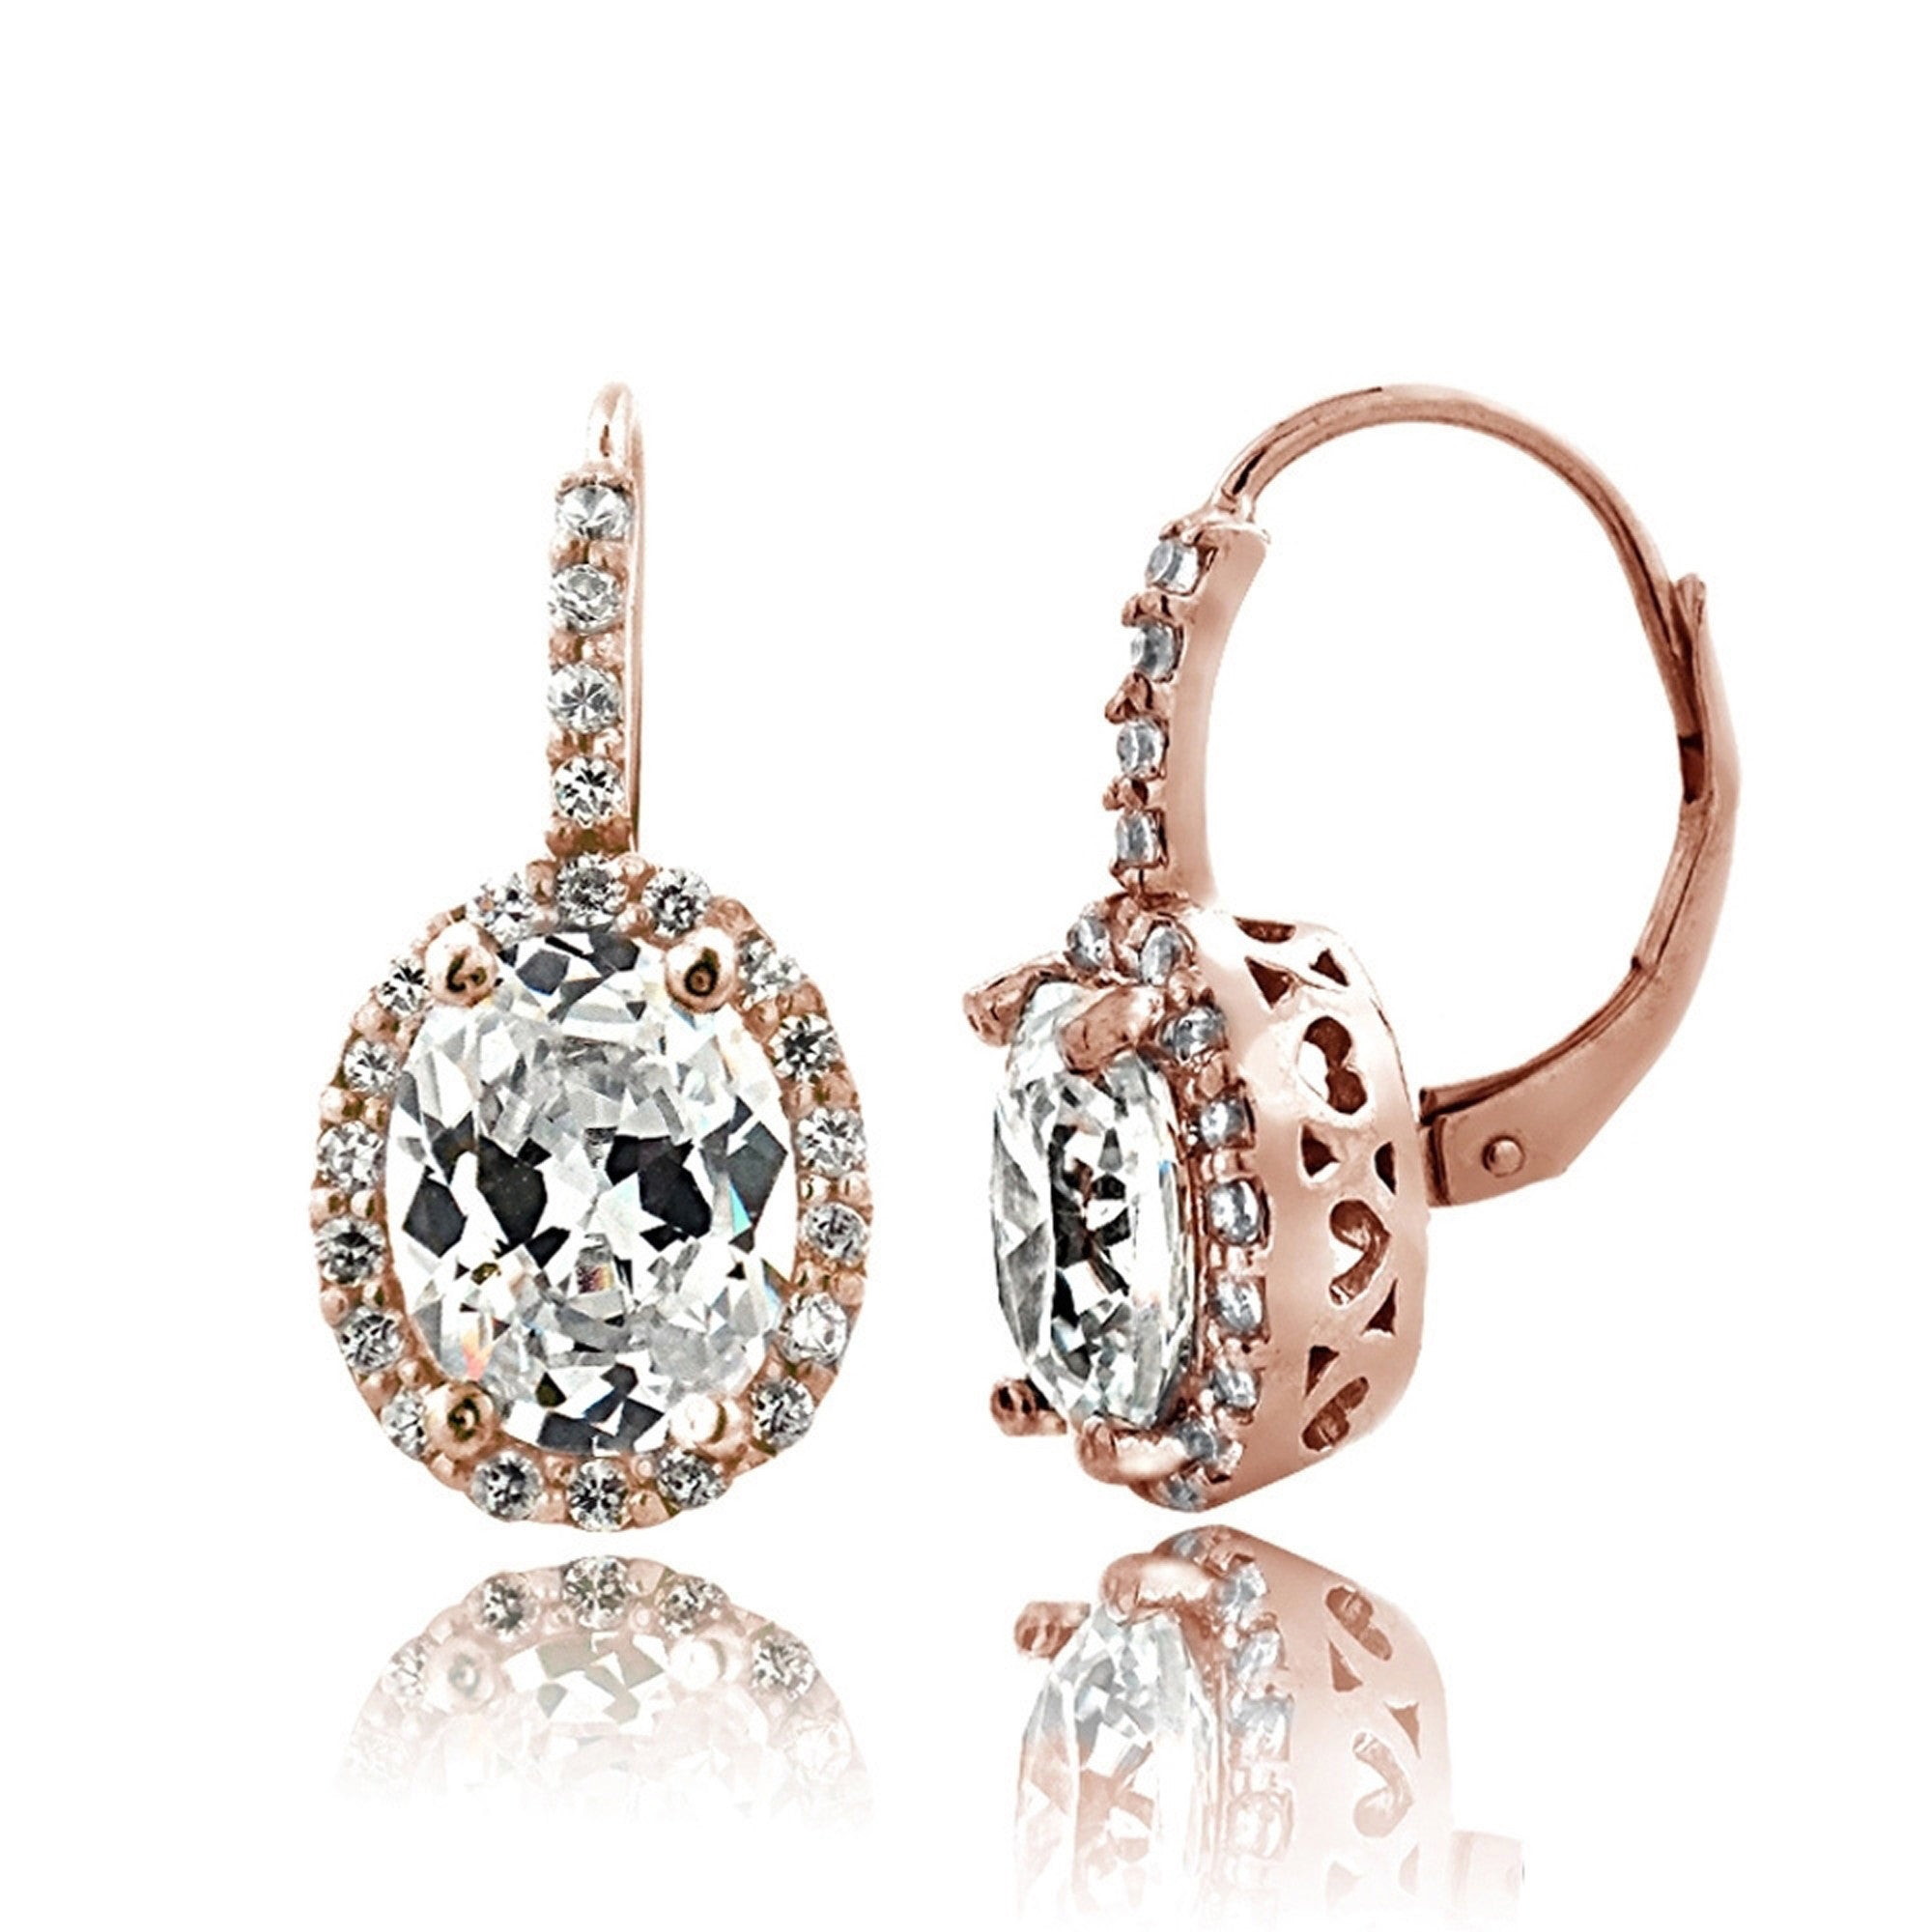 Oval Cubic Zirconia Halo Leverback Earrings - Rose Tone